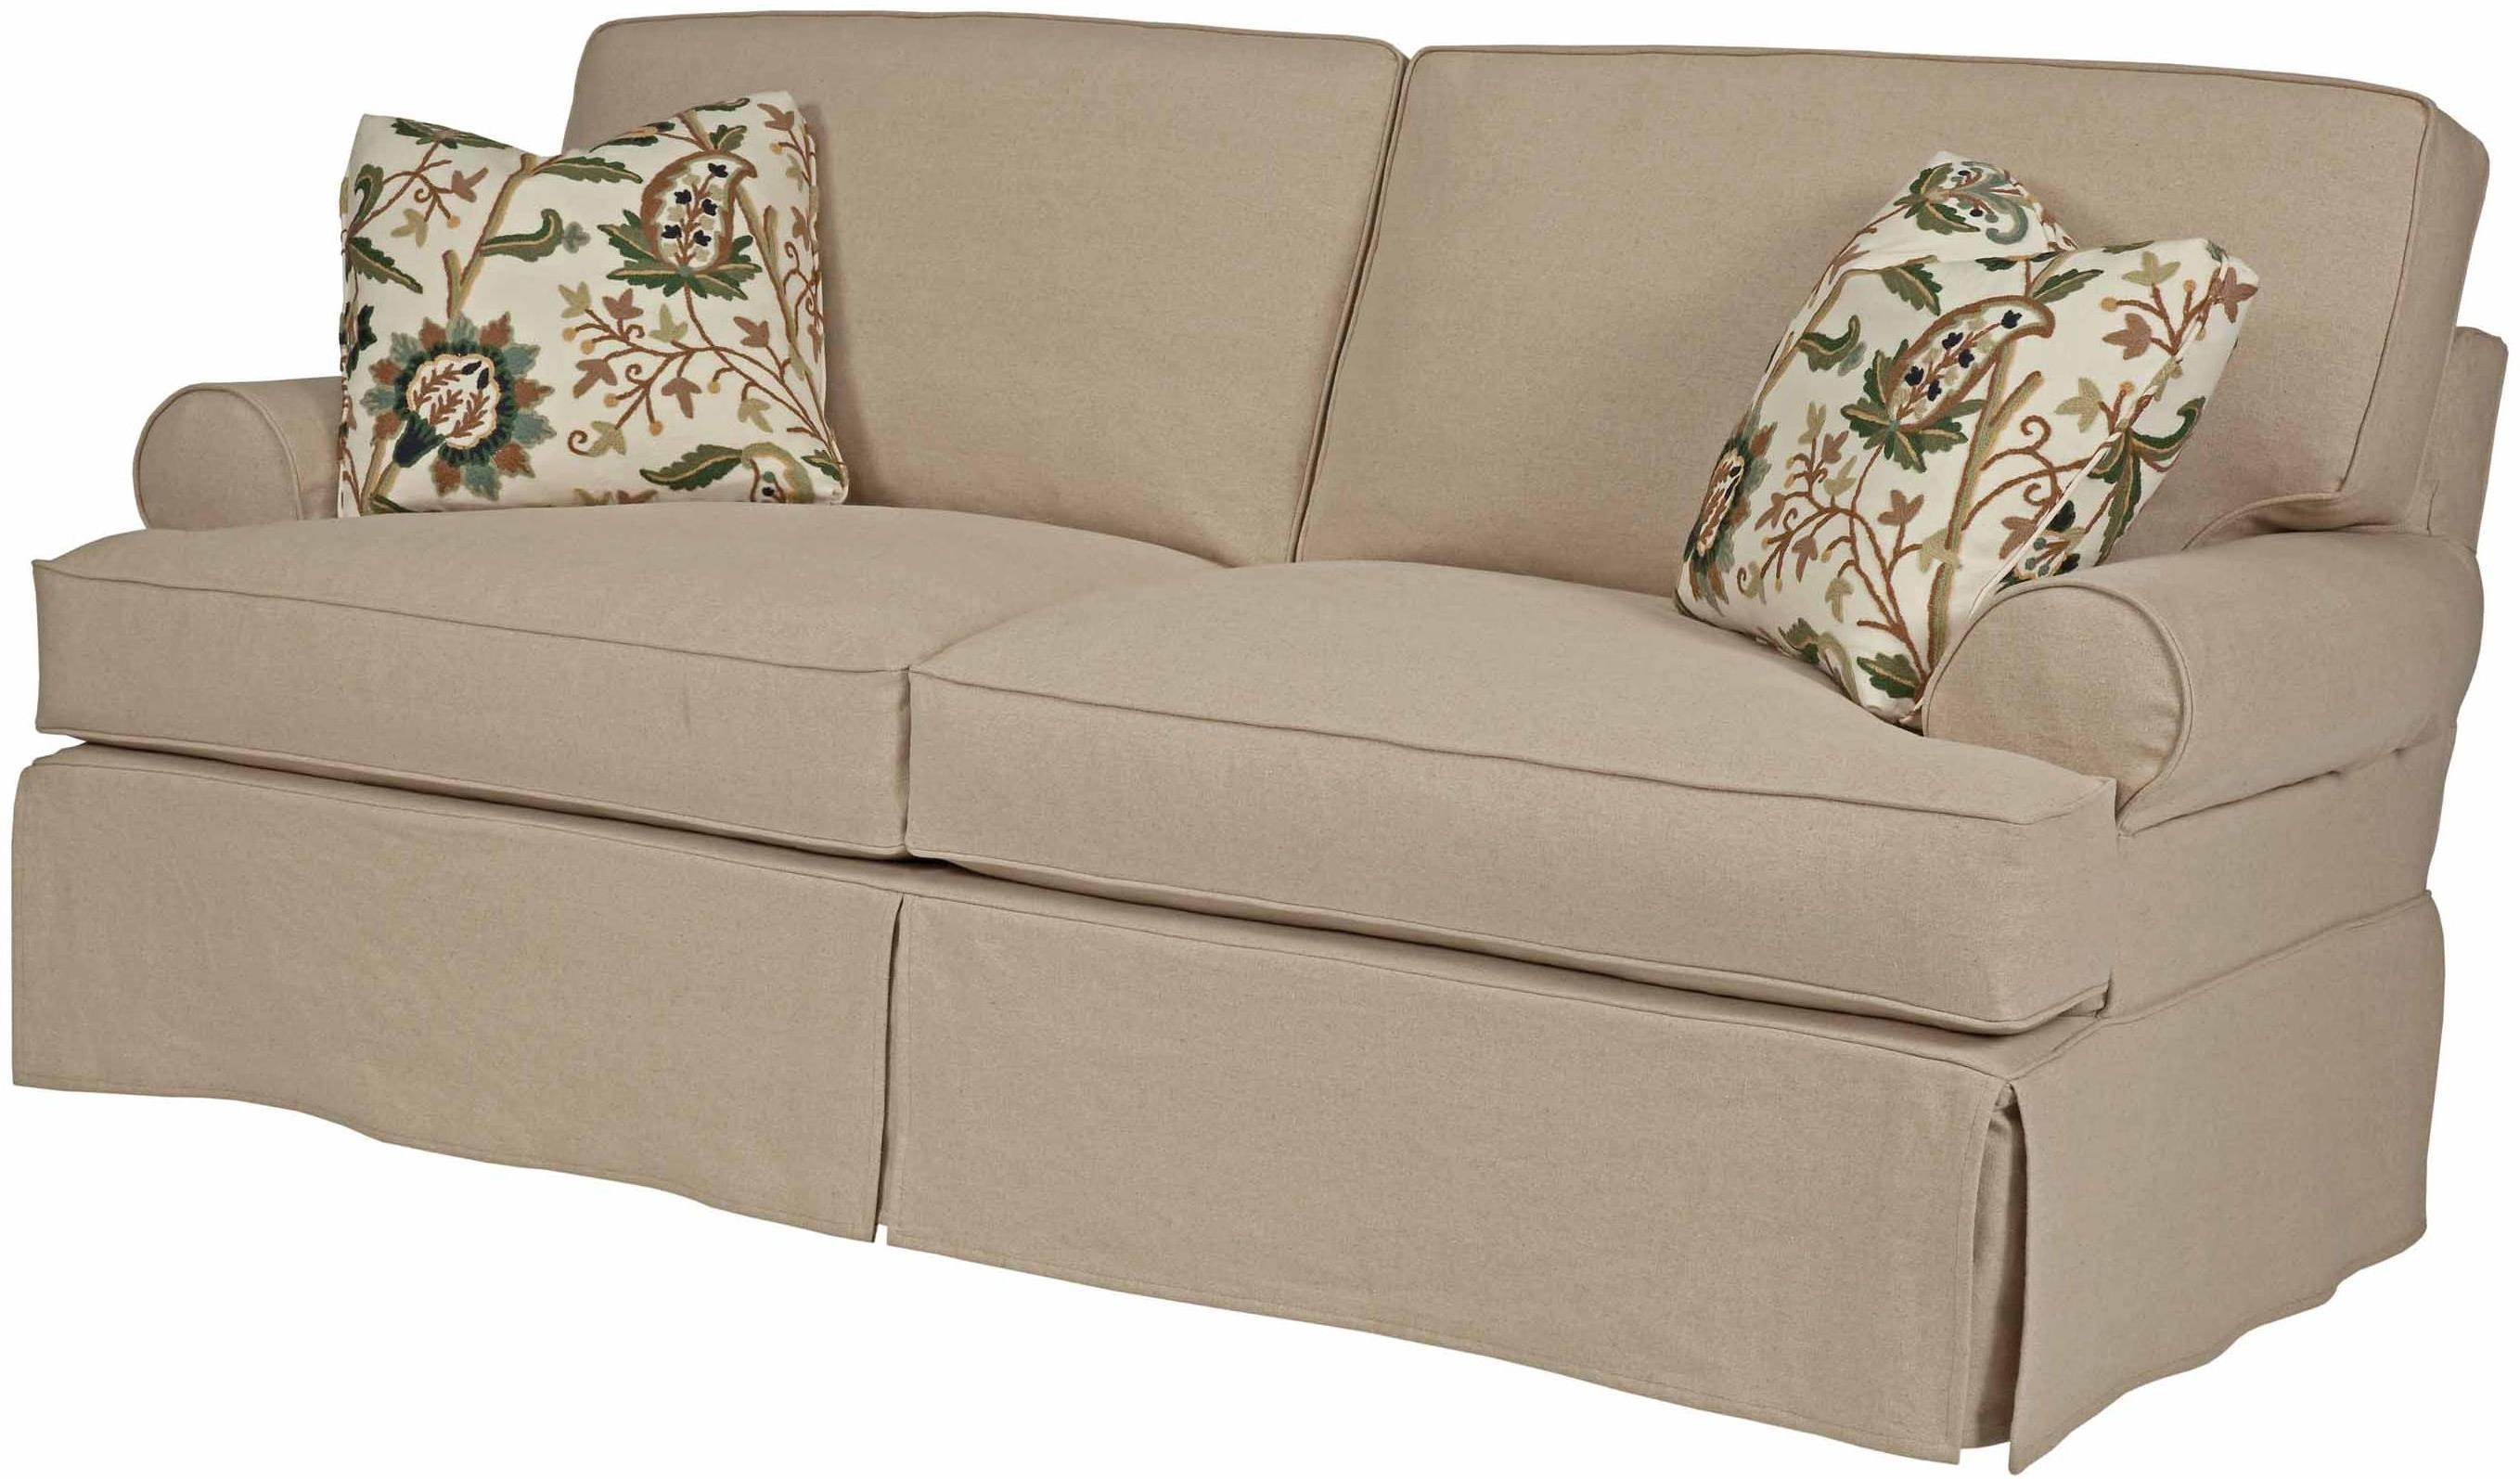 how to cover a sofa cushion oak switch bed 20 inspirations individual couch seat covers